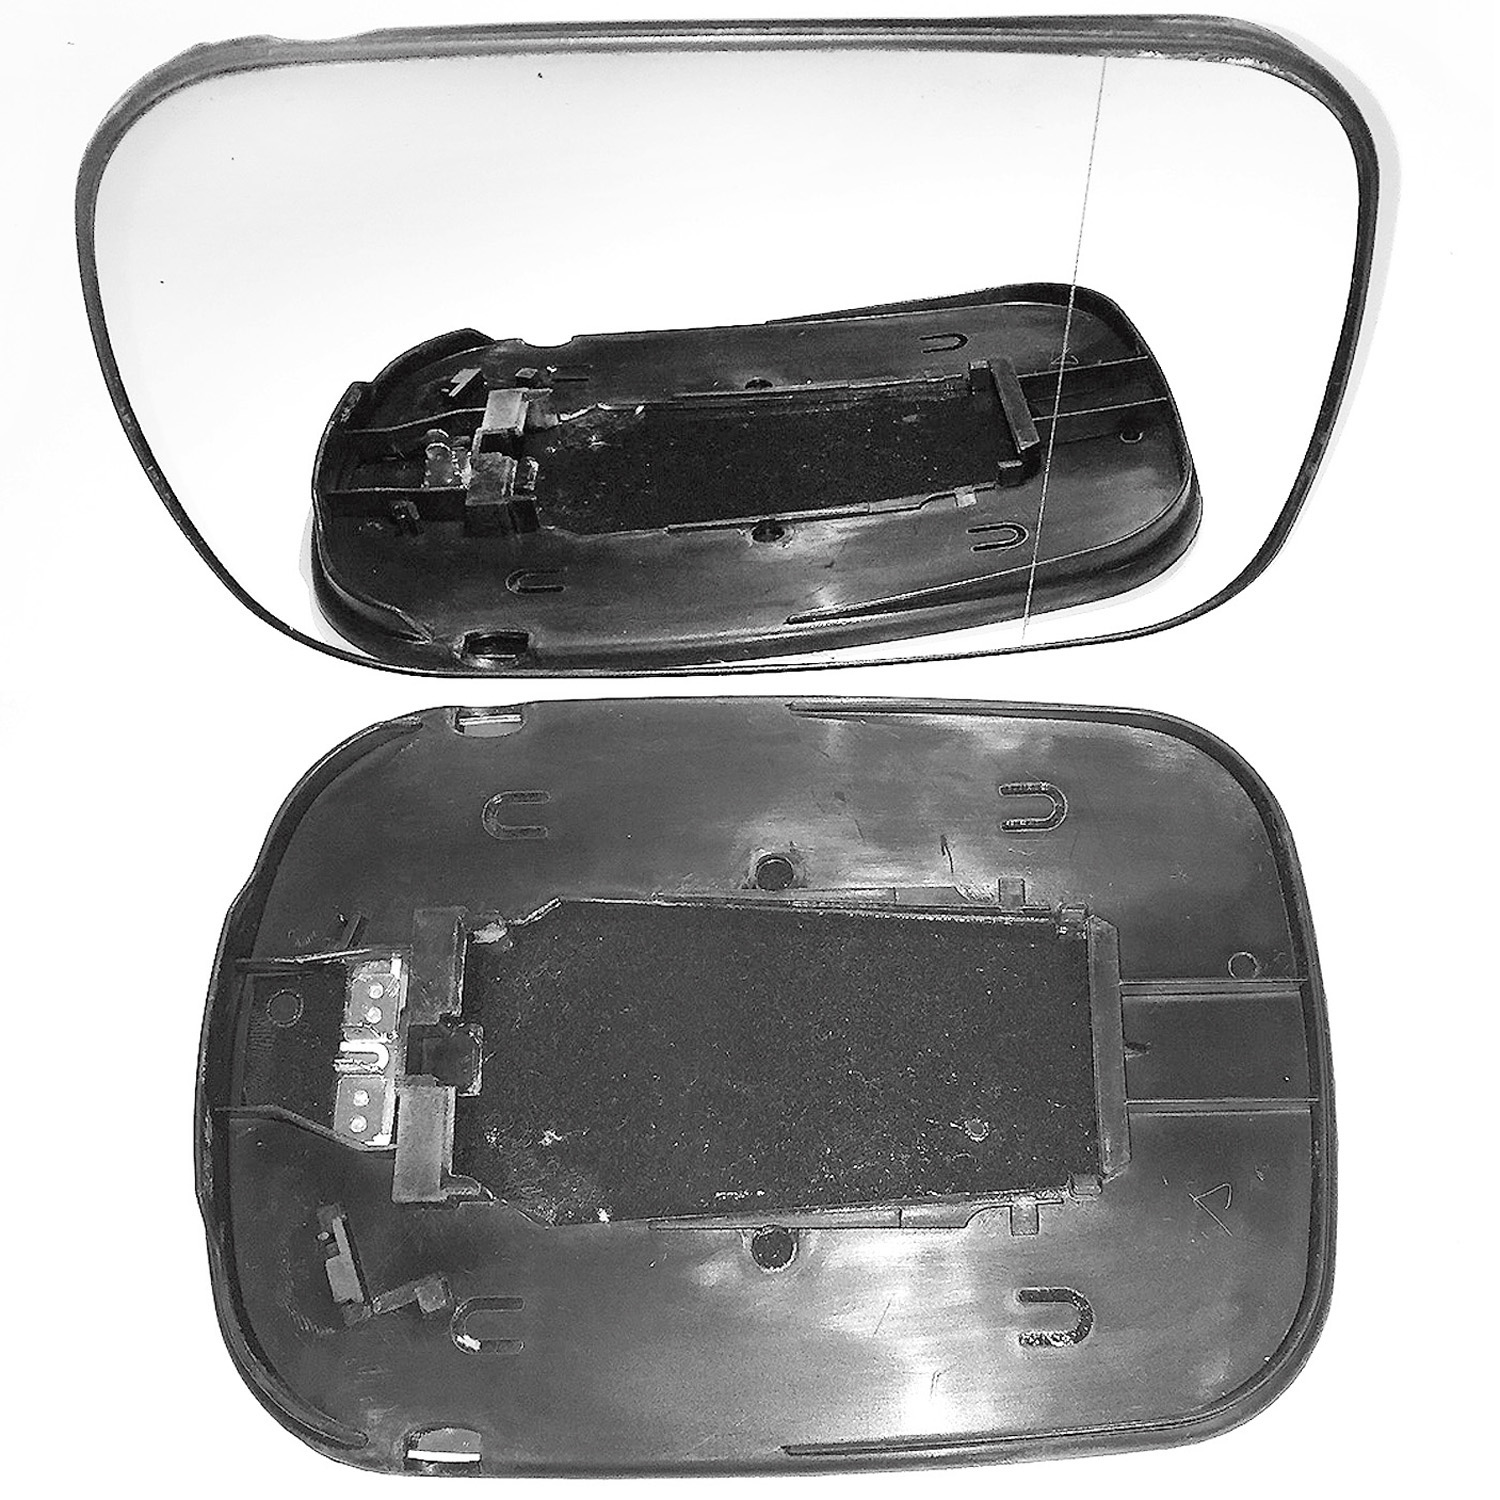 Volvo Xc70 Mirror: Low Price Guarantee On Volvo Xc70 Wing Mirror Replacements